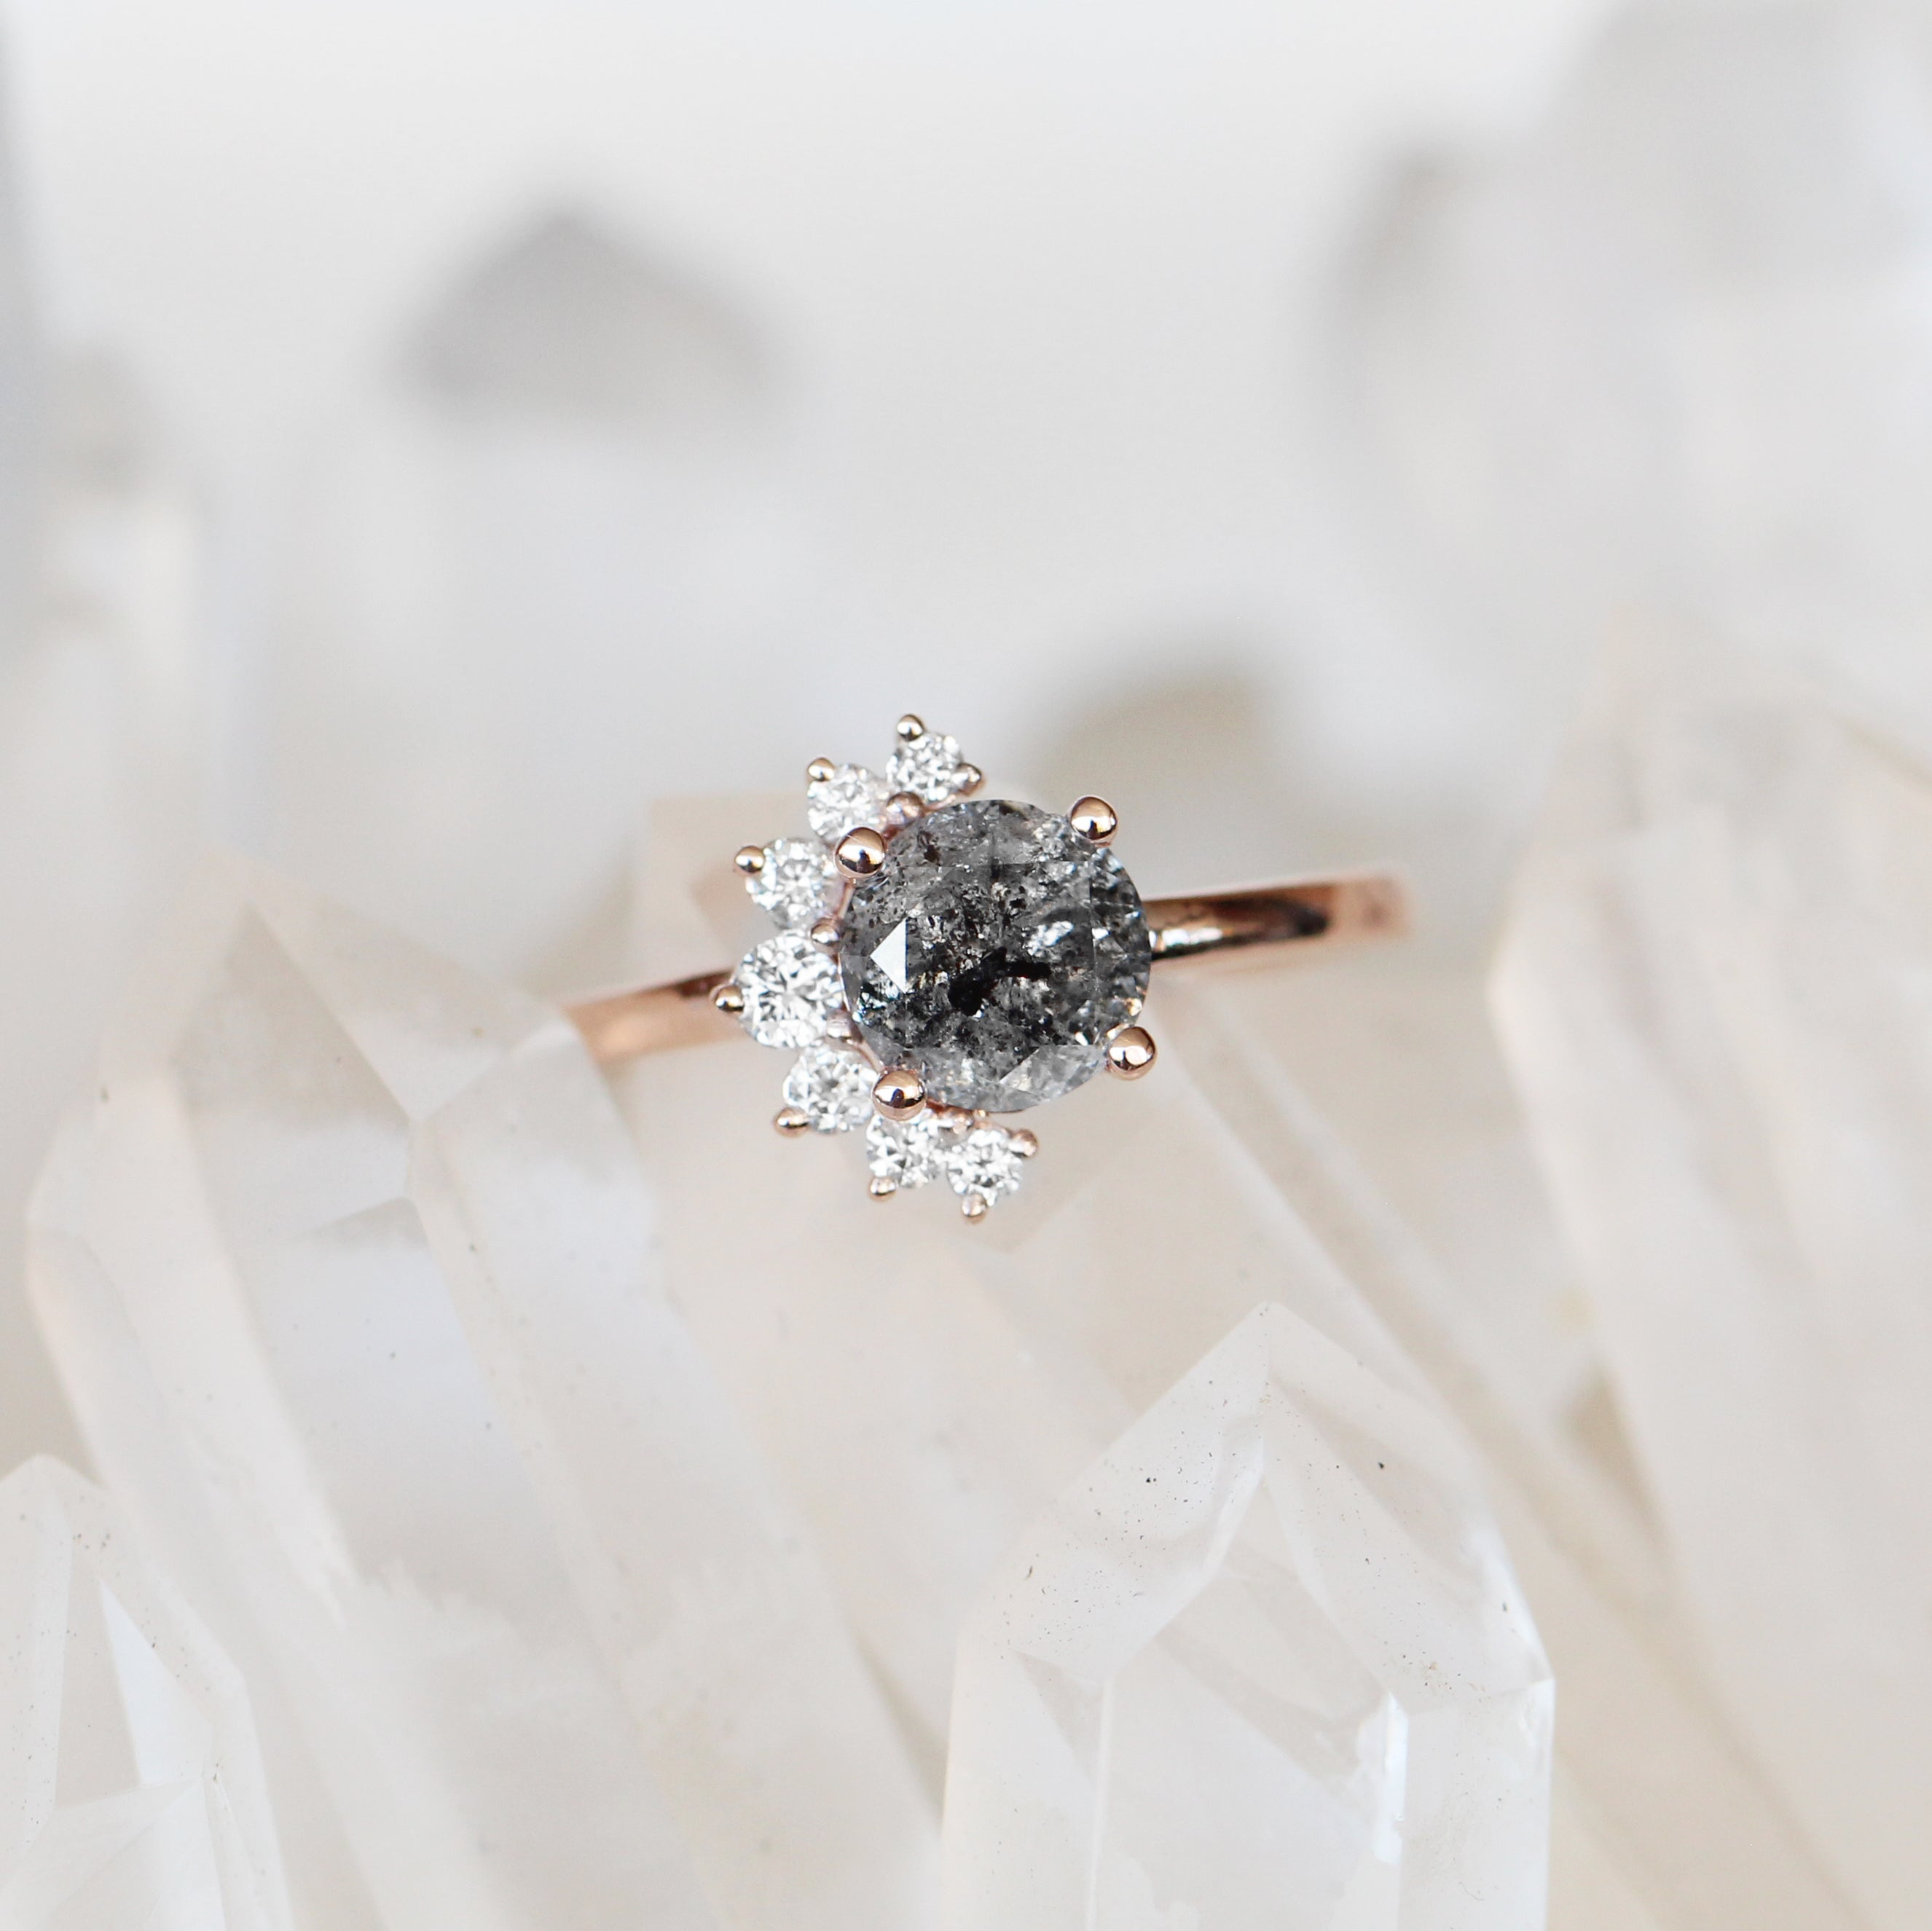 Drew Ring with a 1.24ct Celestial Diamond ® in 10k Rose Gold - Ready to Size and Ship - Celestial Diamonds ® by Midwinter Co.